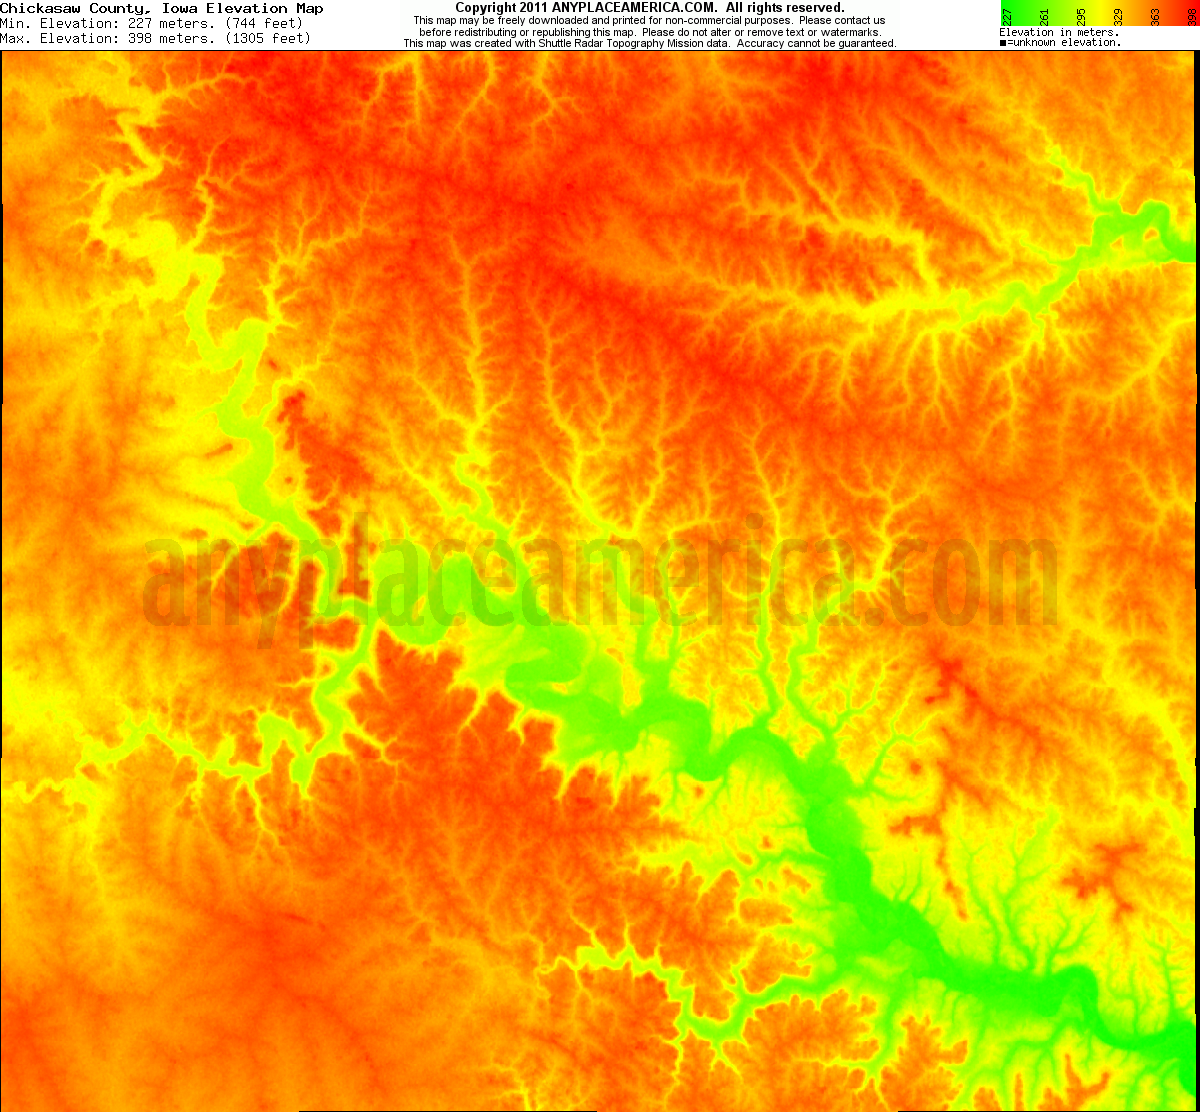 Chickasaw, Iowa elevation map